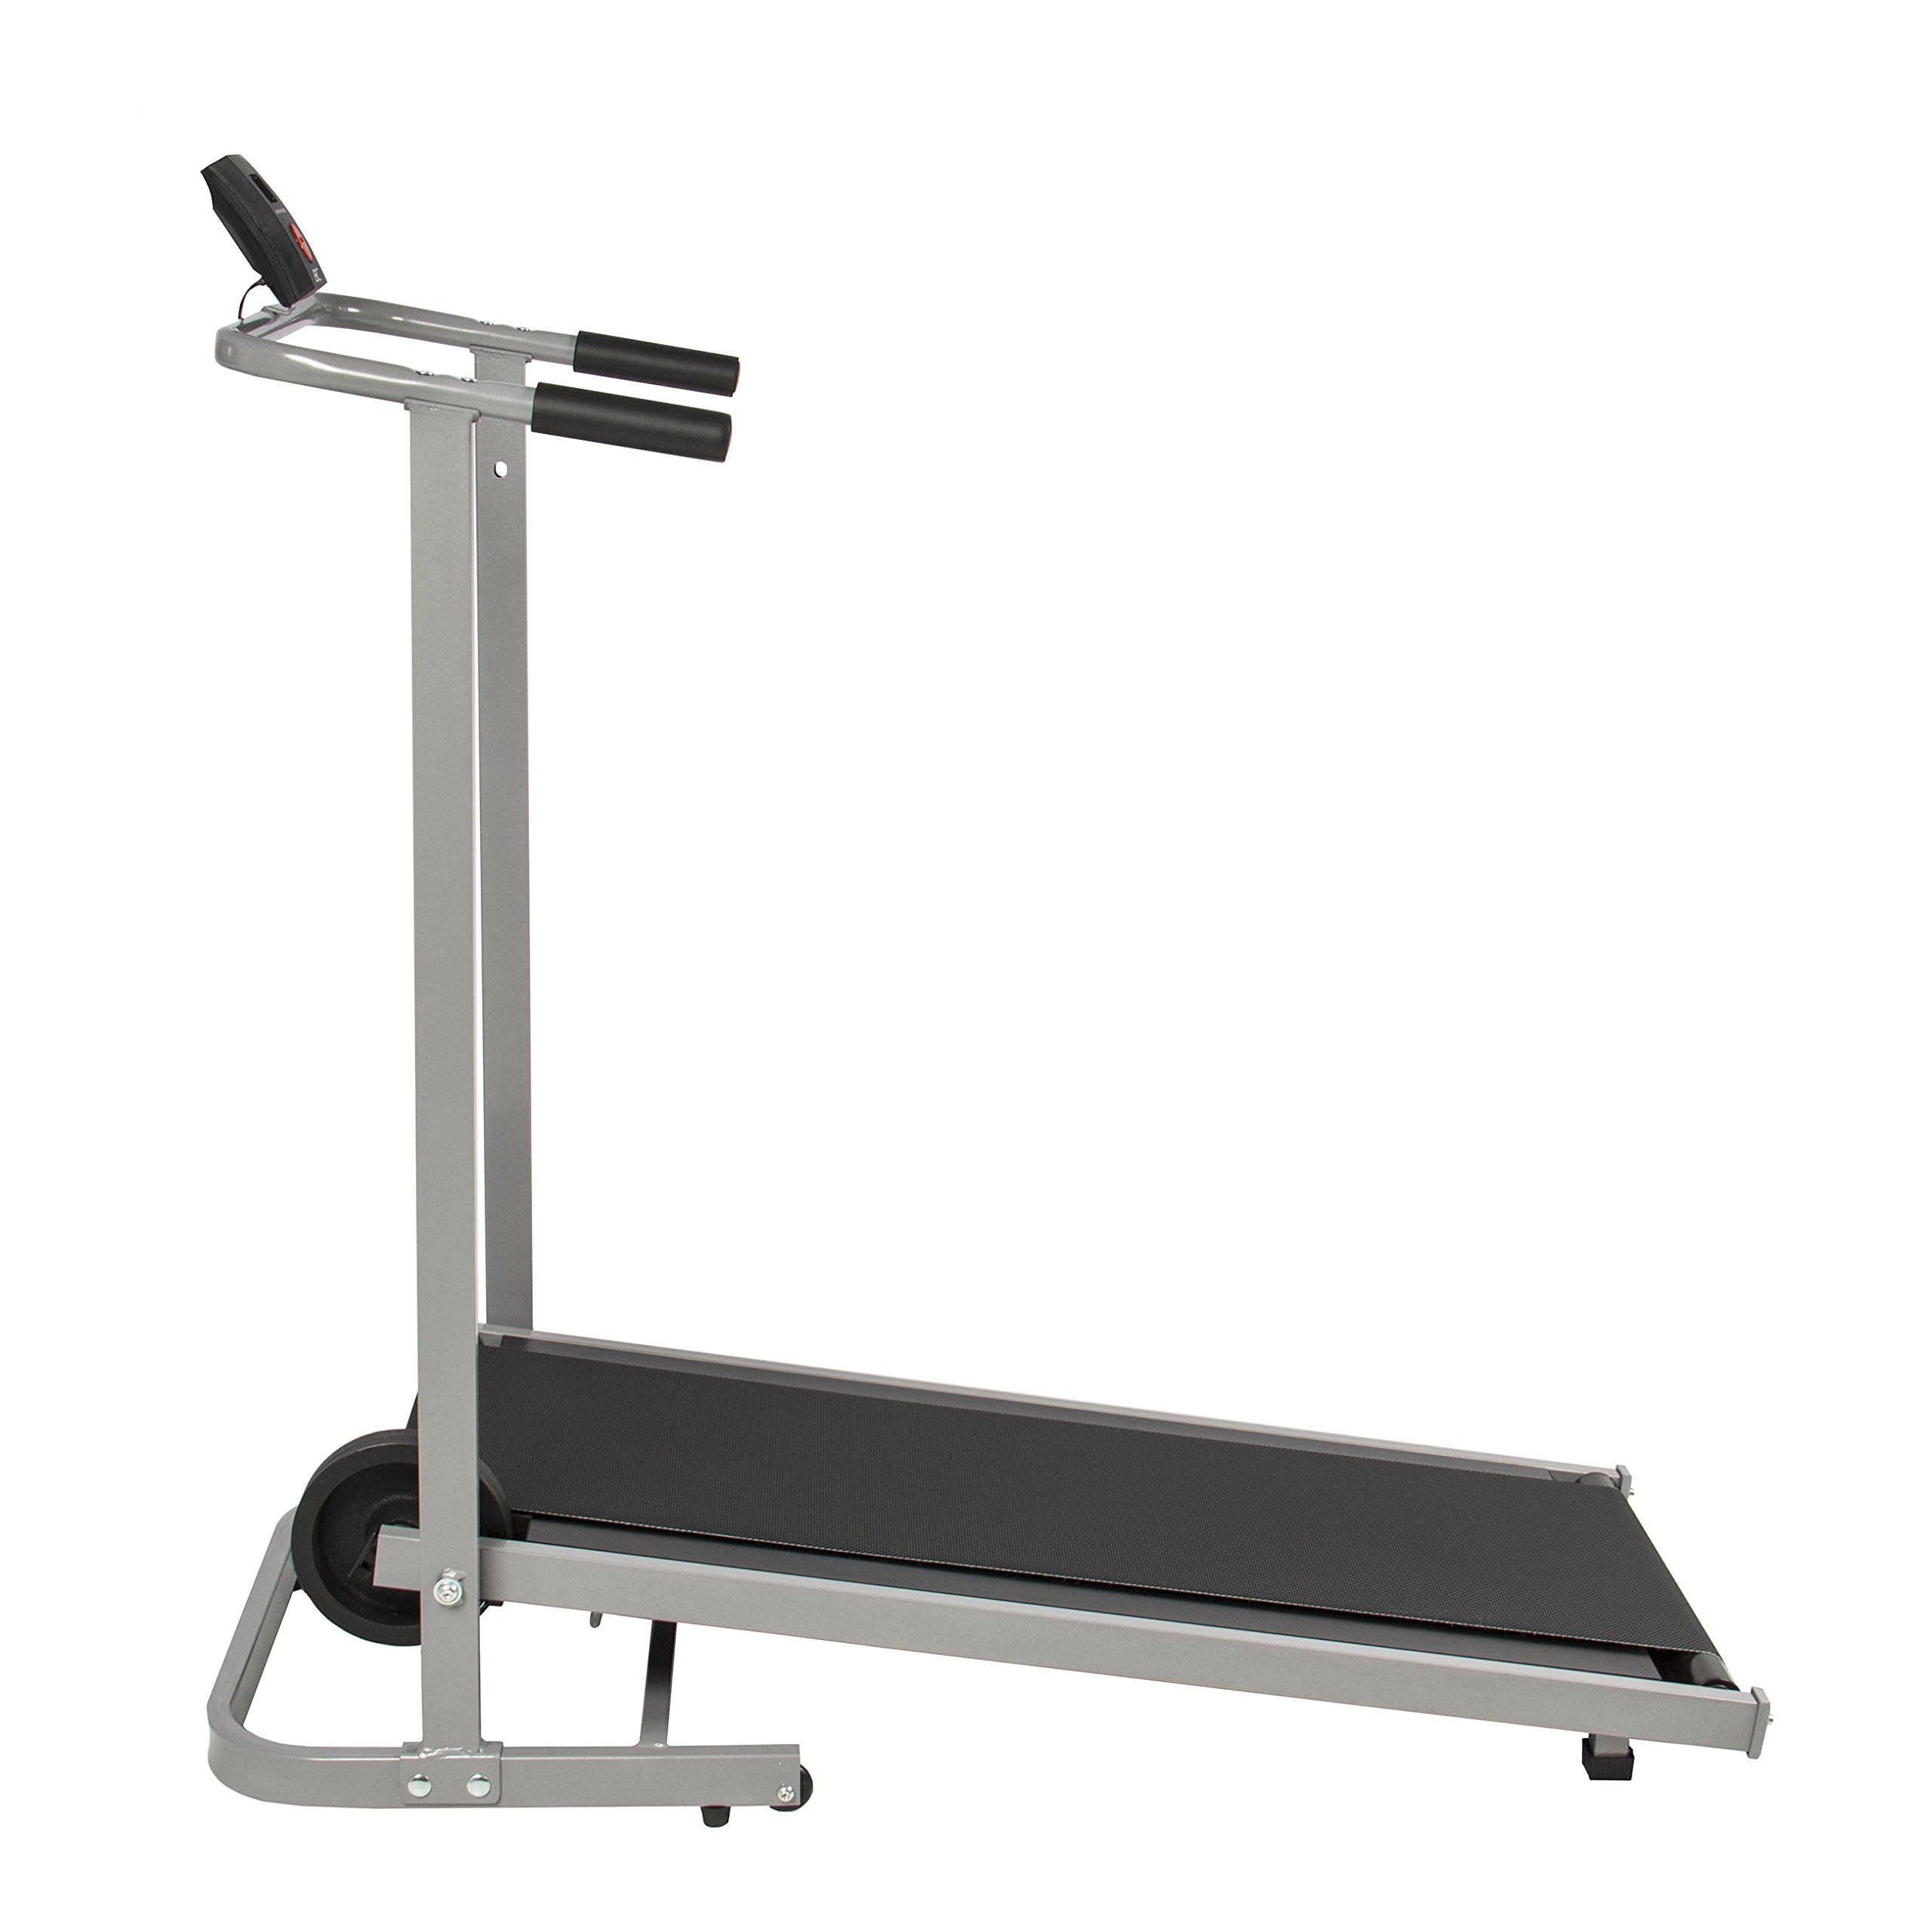 Treadmill Portable Folding Incline Cardio Fitness Exercise Home Gym Manual by Best Choice Products (Image #2)